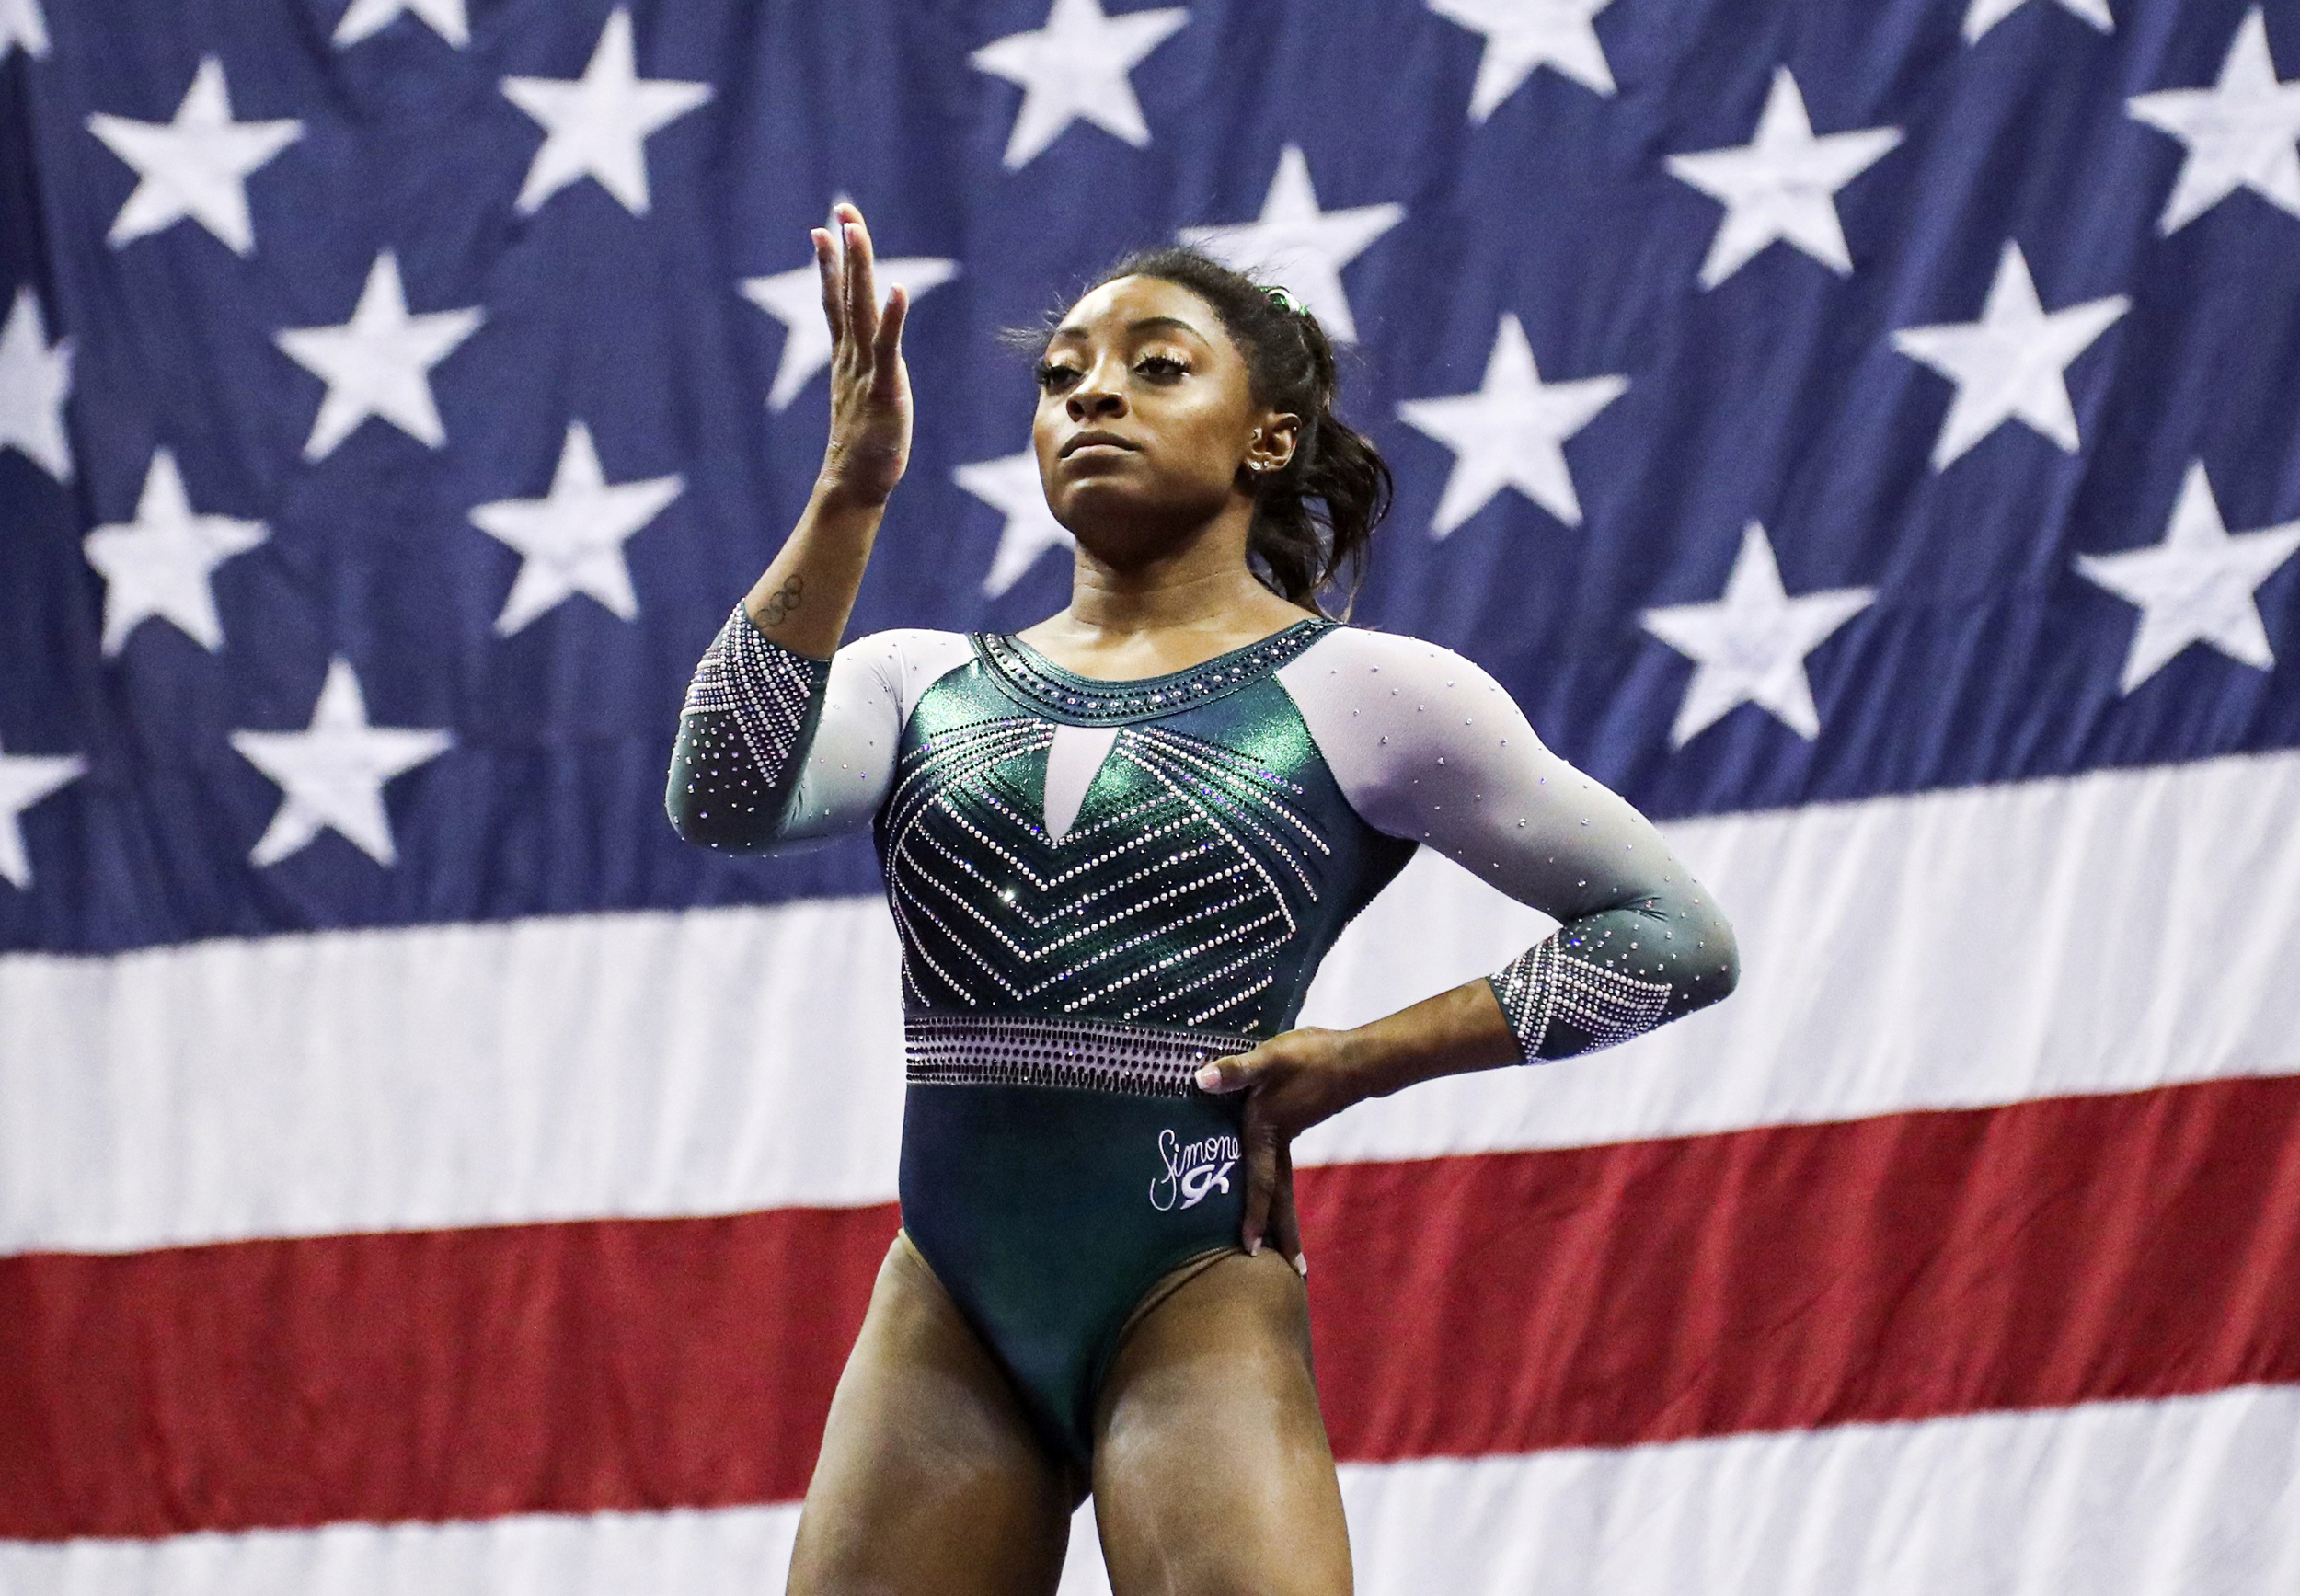 Simone Biles having 'hard time processing' brother's arrest